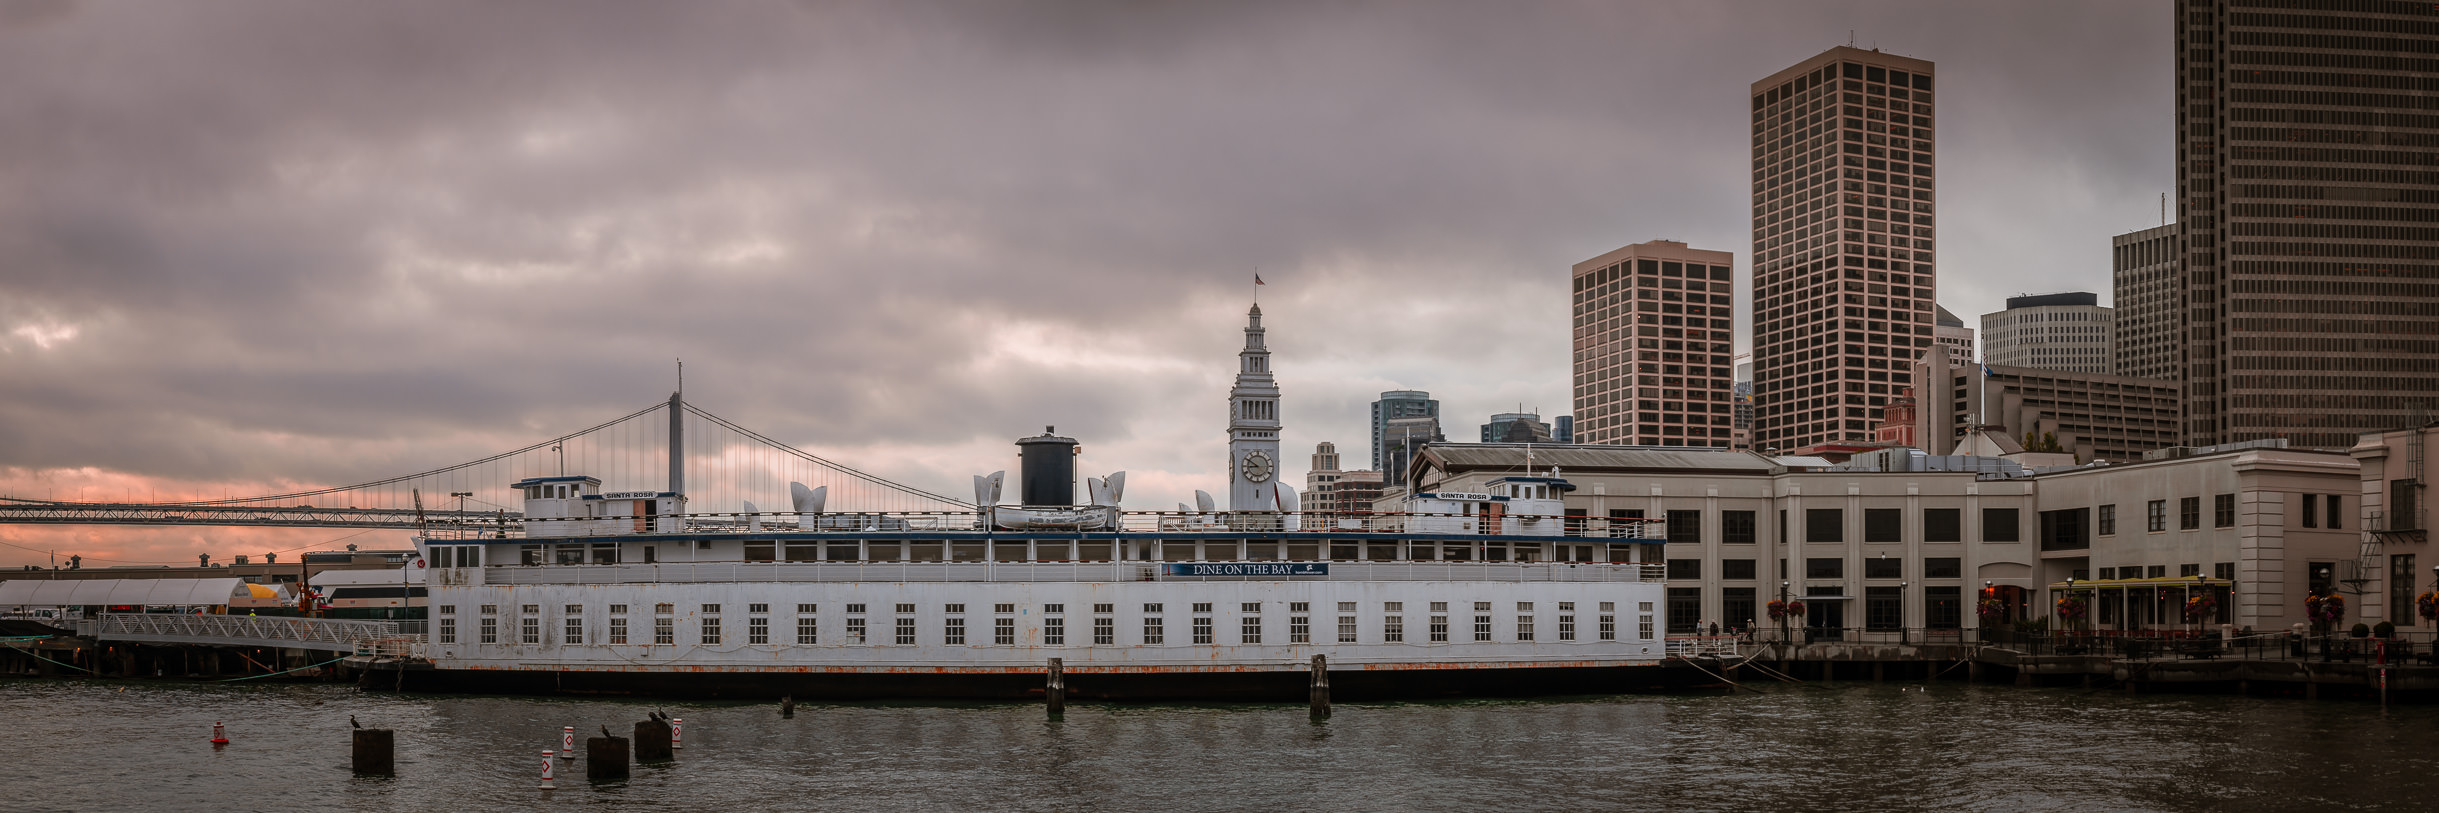 The sun rises on San Francisco's Financial District and the history 1927 ferrySanta Rosa, now permanently moored as an event center.